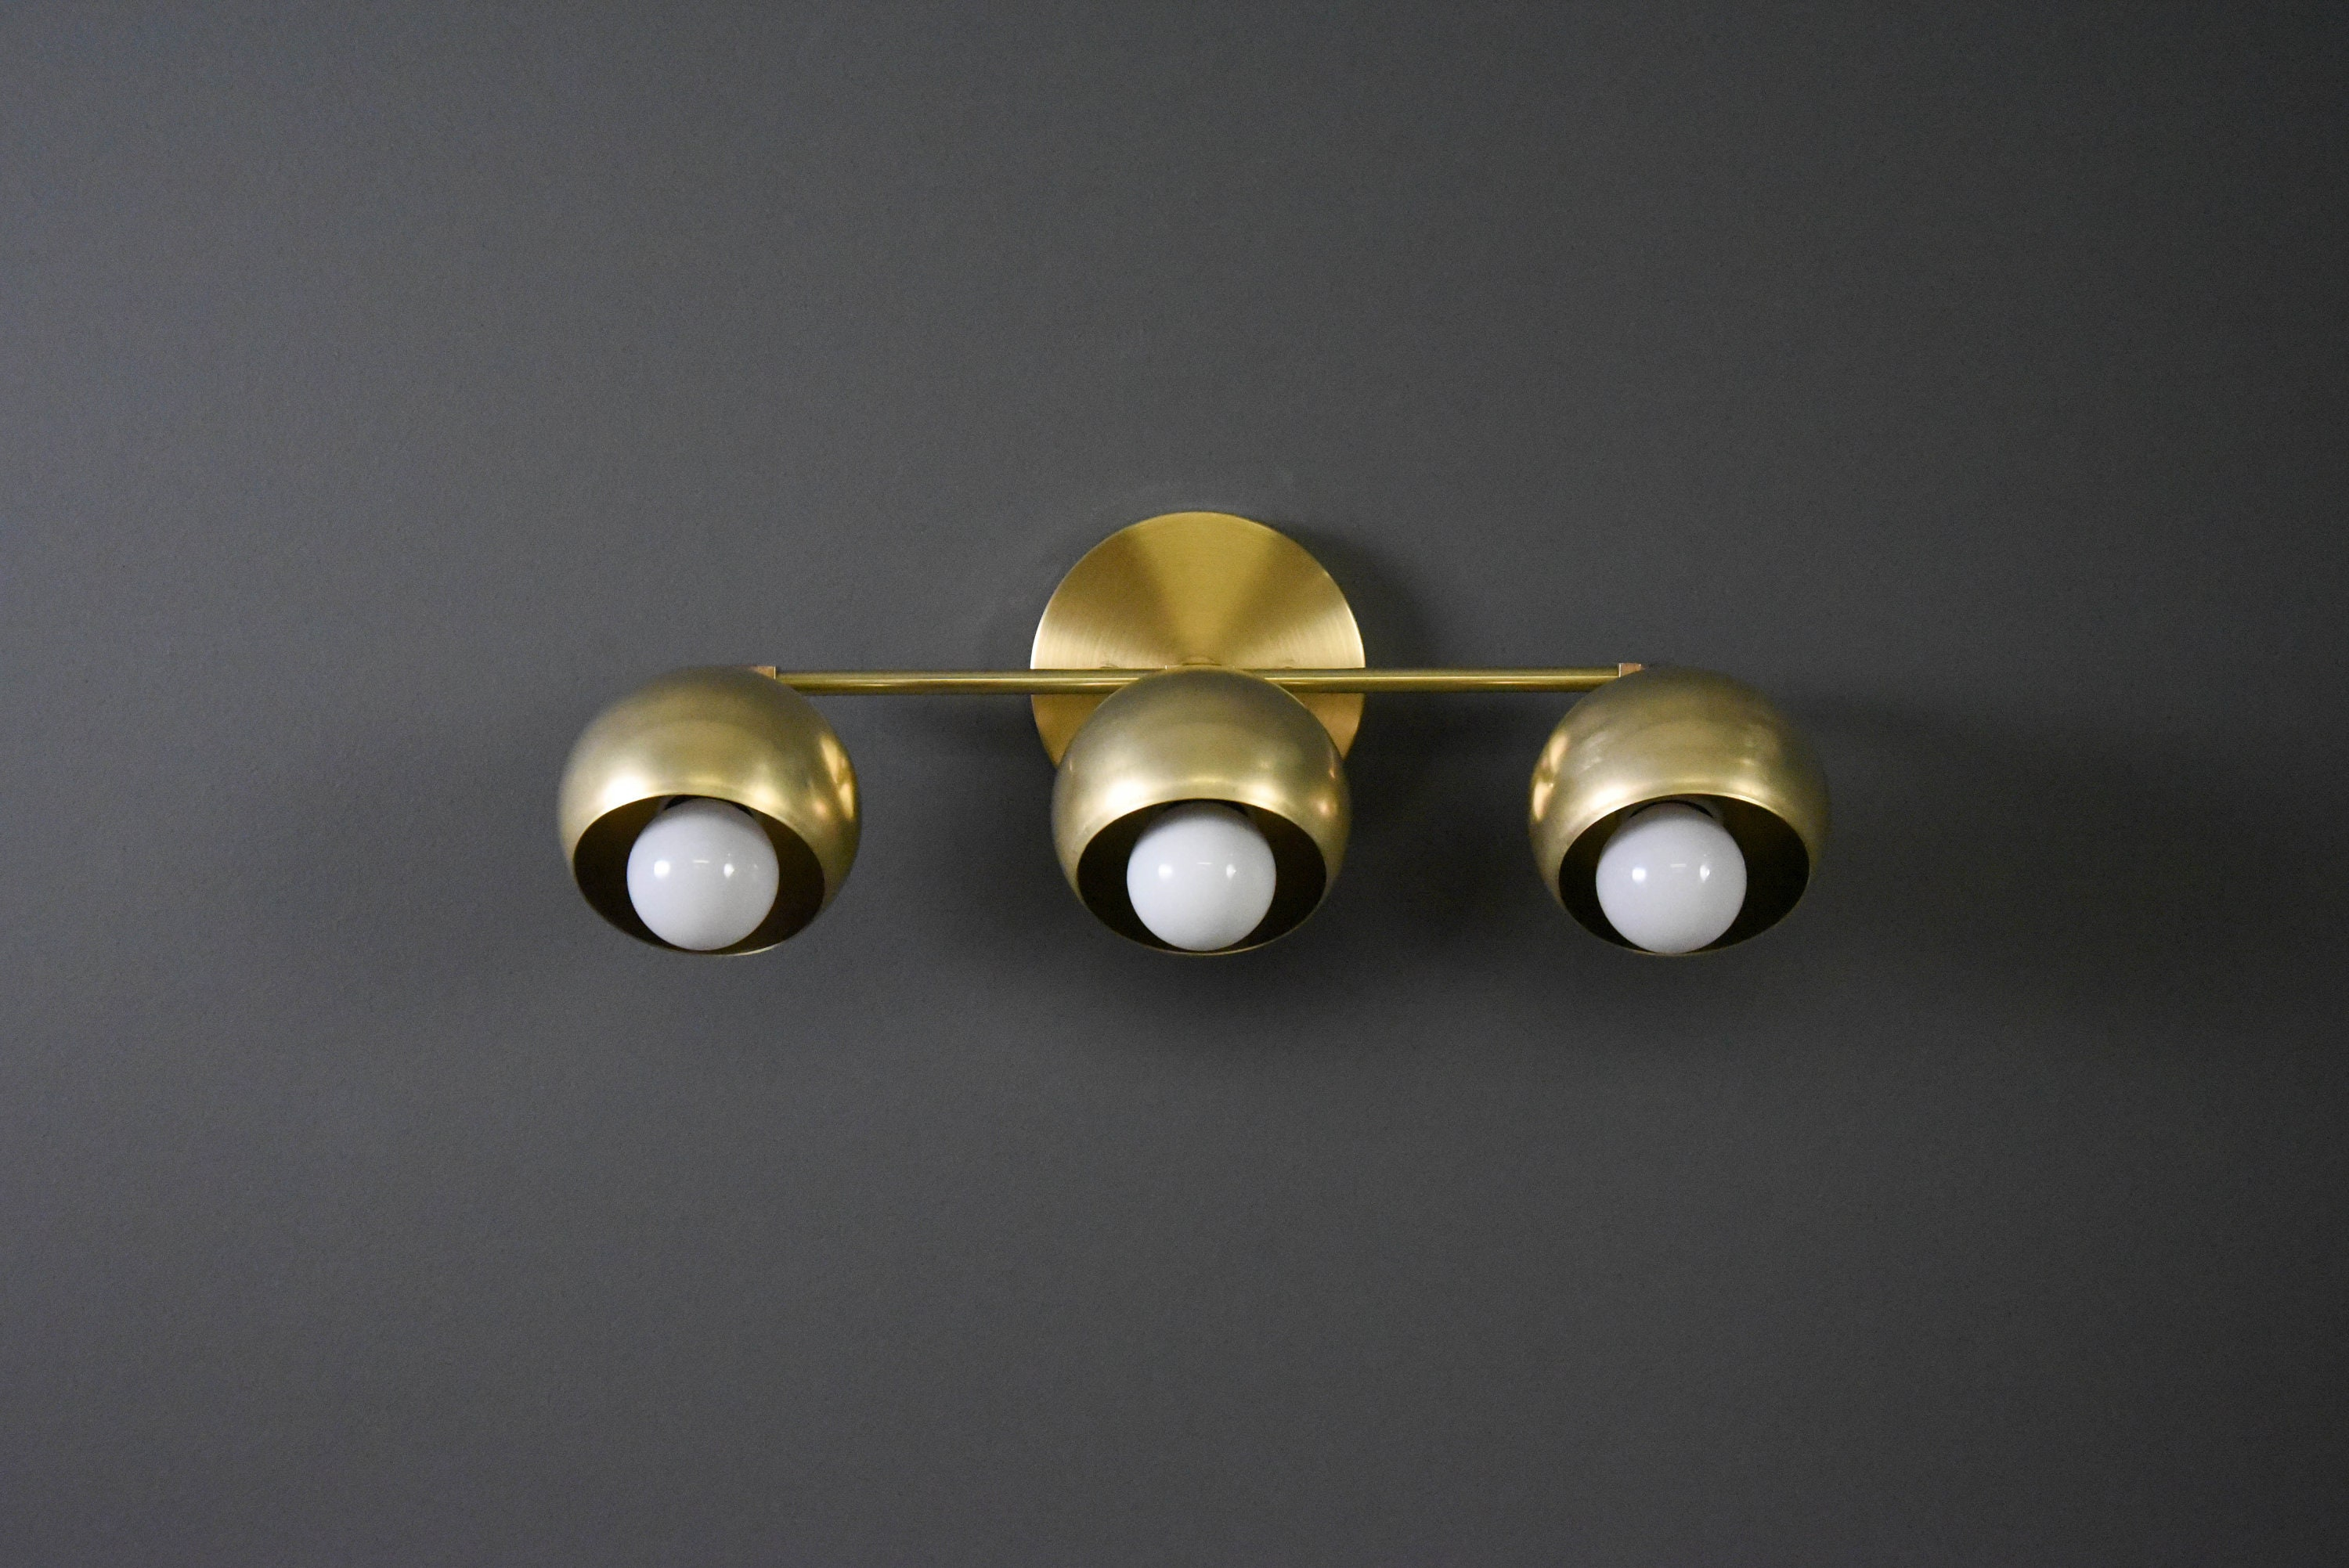 raw gold art mid sconce light bathroom modern ul brass century vanity spherical listing industrial rrwk orb il wall listed fullxfull